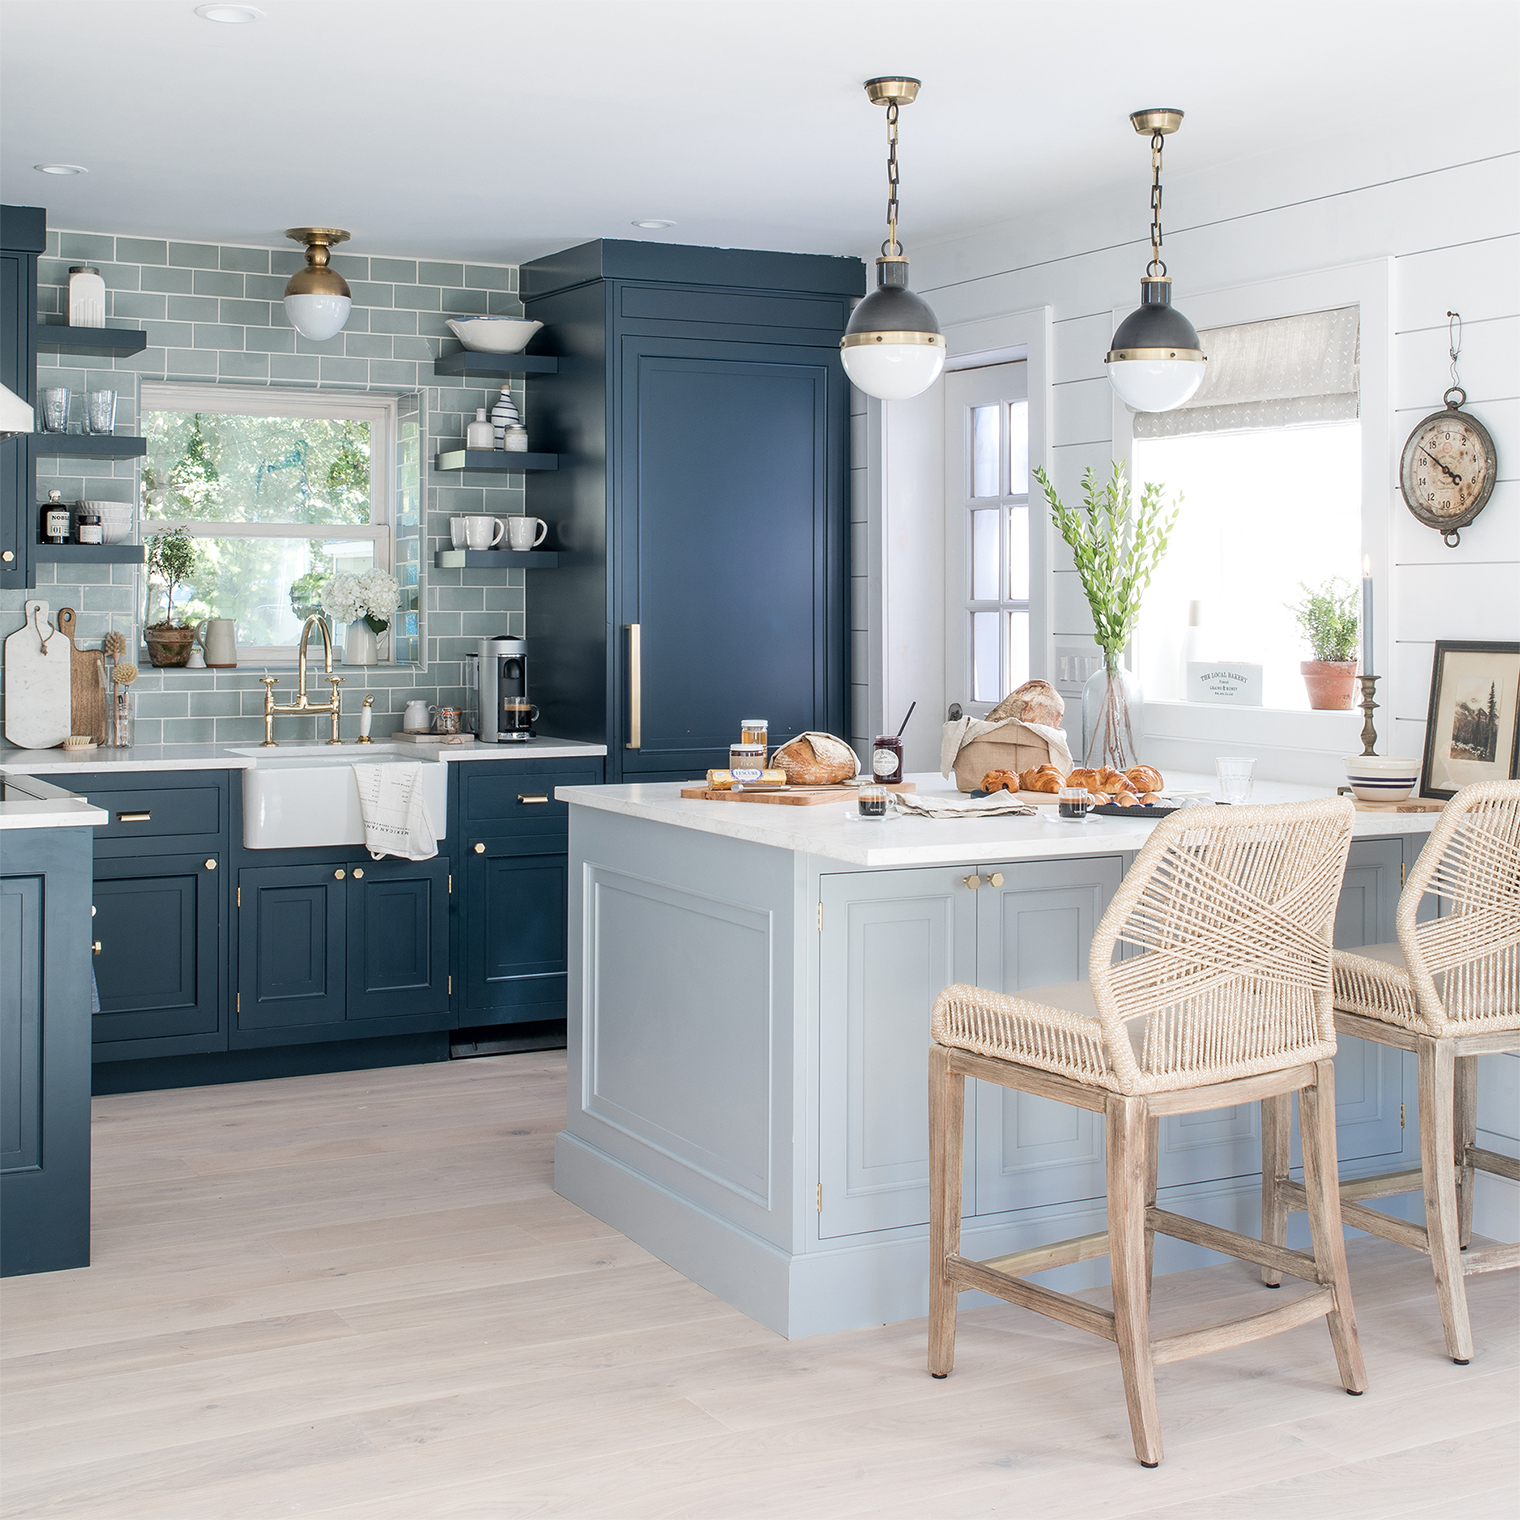 Beach House Kitchen Designs. Interior Design, Styling \u0026 Photography By  Will Taylor |